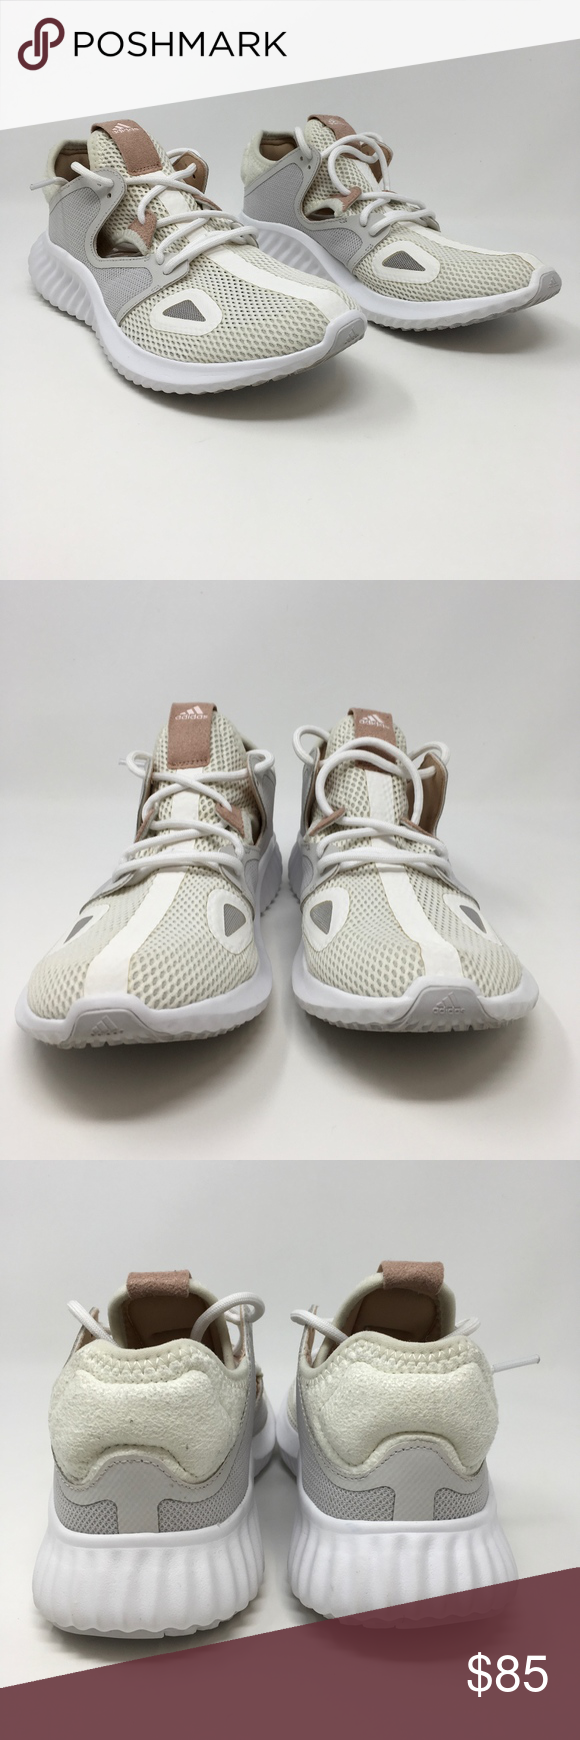 876a88c3c Adidas Run Lux Clima Running Shoe CQ0595 Ash Pearl These womens Adidas  running shoes are new without the box. The tread of these shoes shows dirt  on them ...